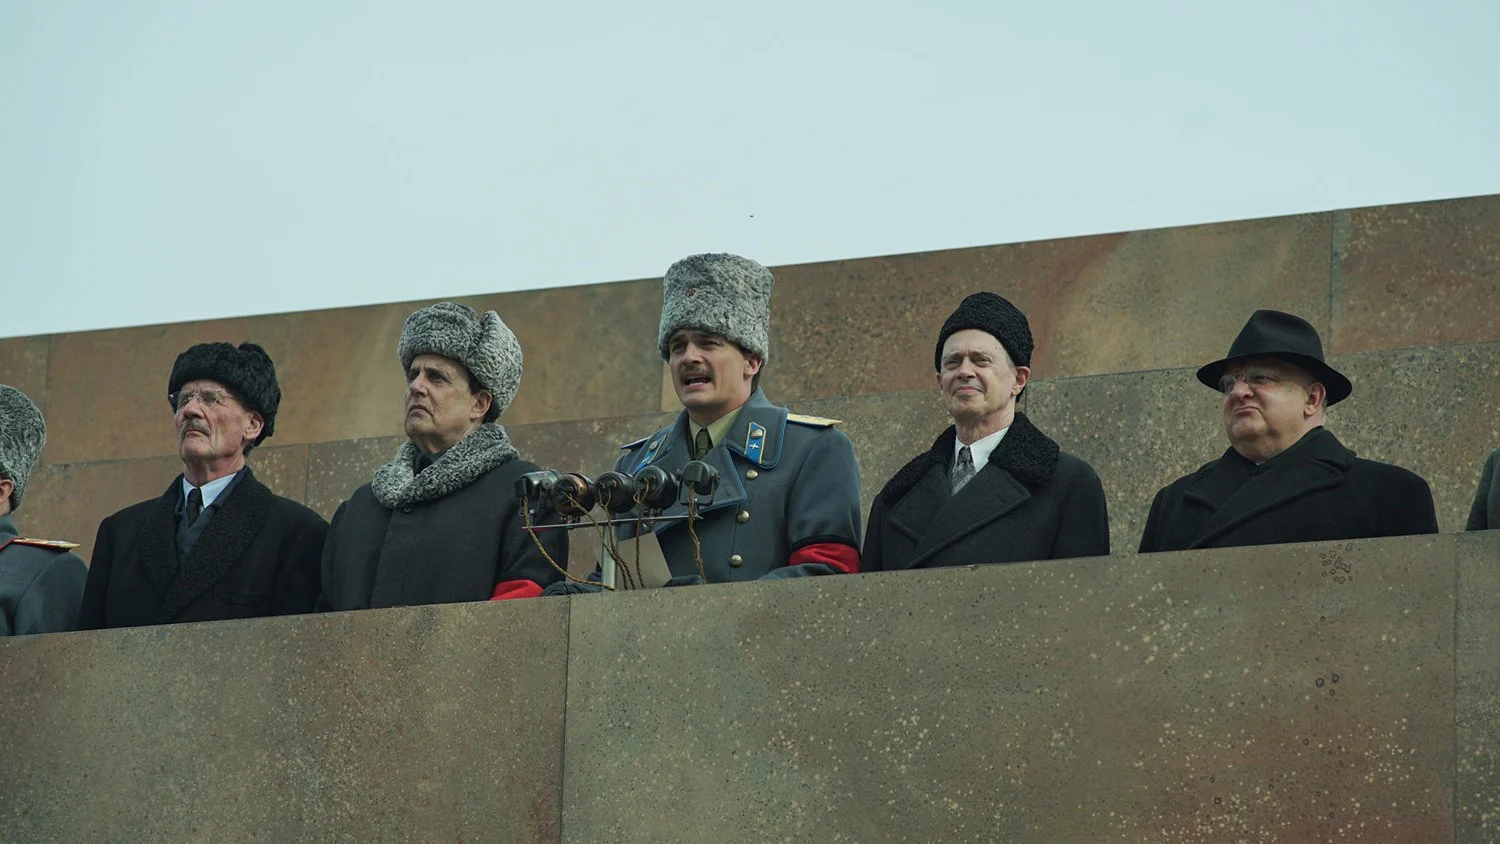 TheDeathOfStalin - 3Hats